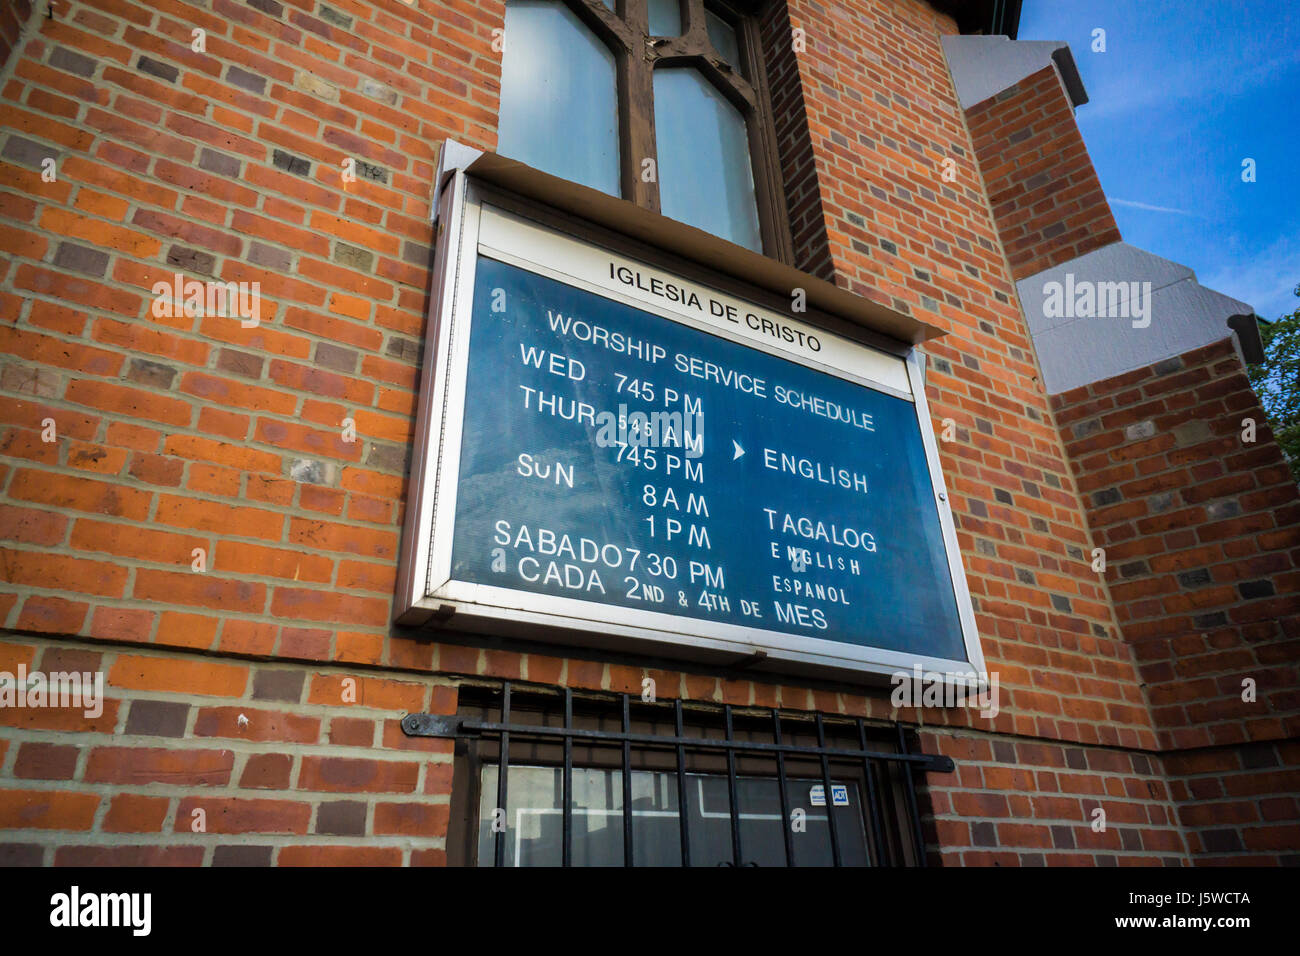 The sign board outside of the Iglesia de Cristo on Thursday, May 11, 2017 in the Long Island City neighborhood in - Stock Image